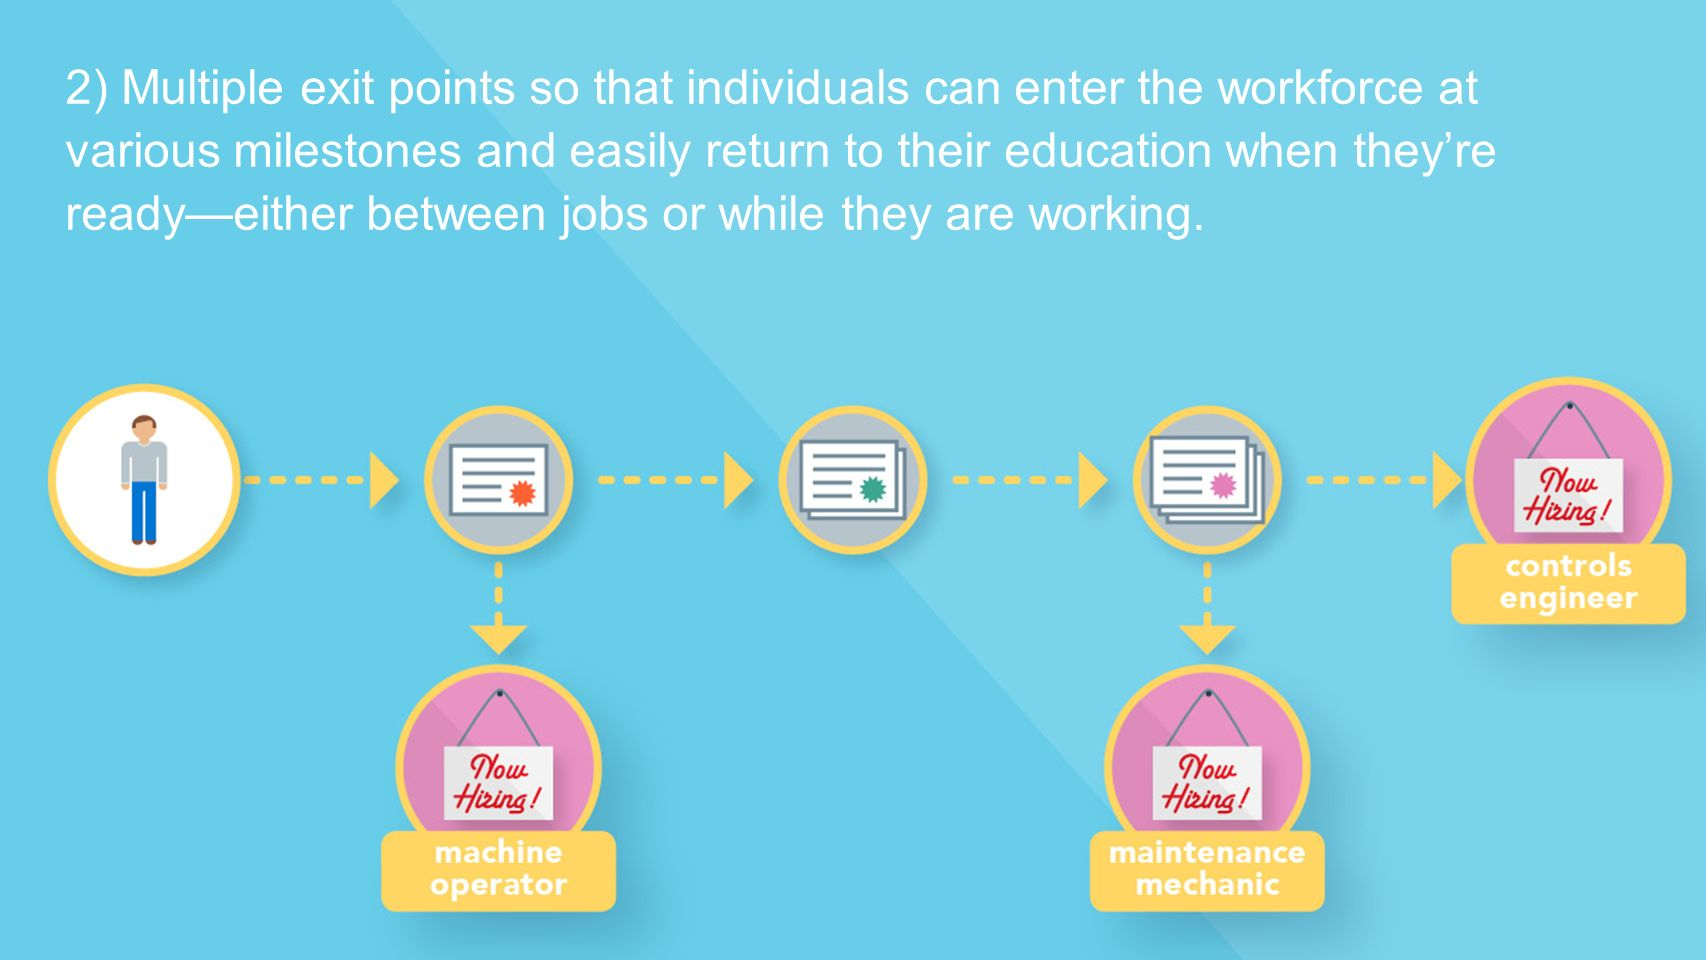 2) Multiple exit points so that individuals can enter the workforce at various milestones and easily return to their education when they're ready—either between jobs or while they are working.